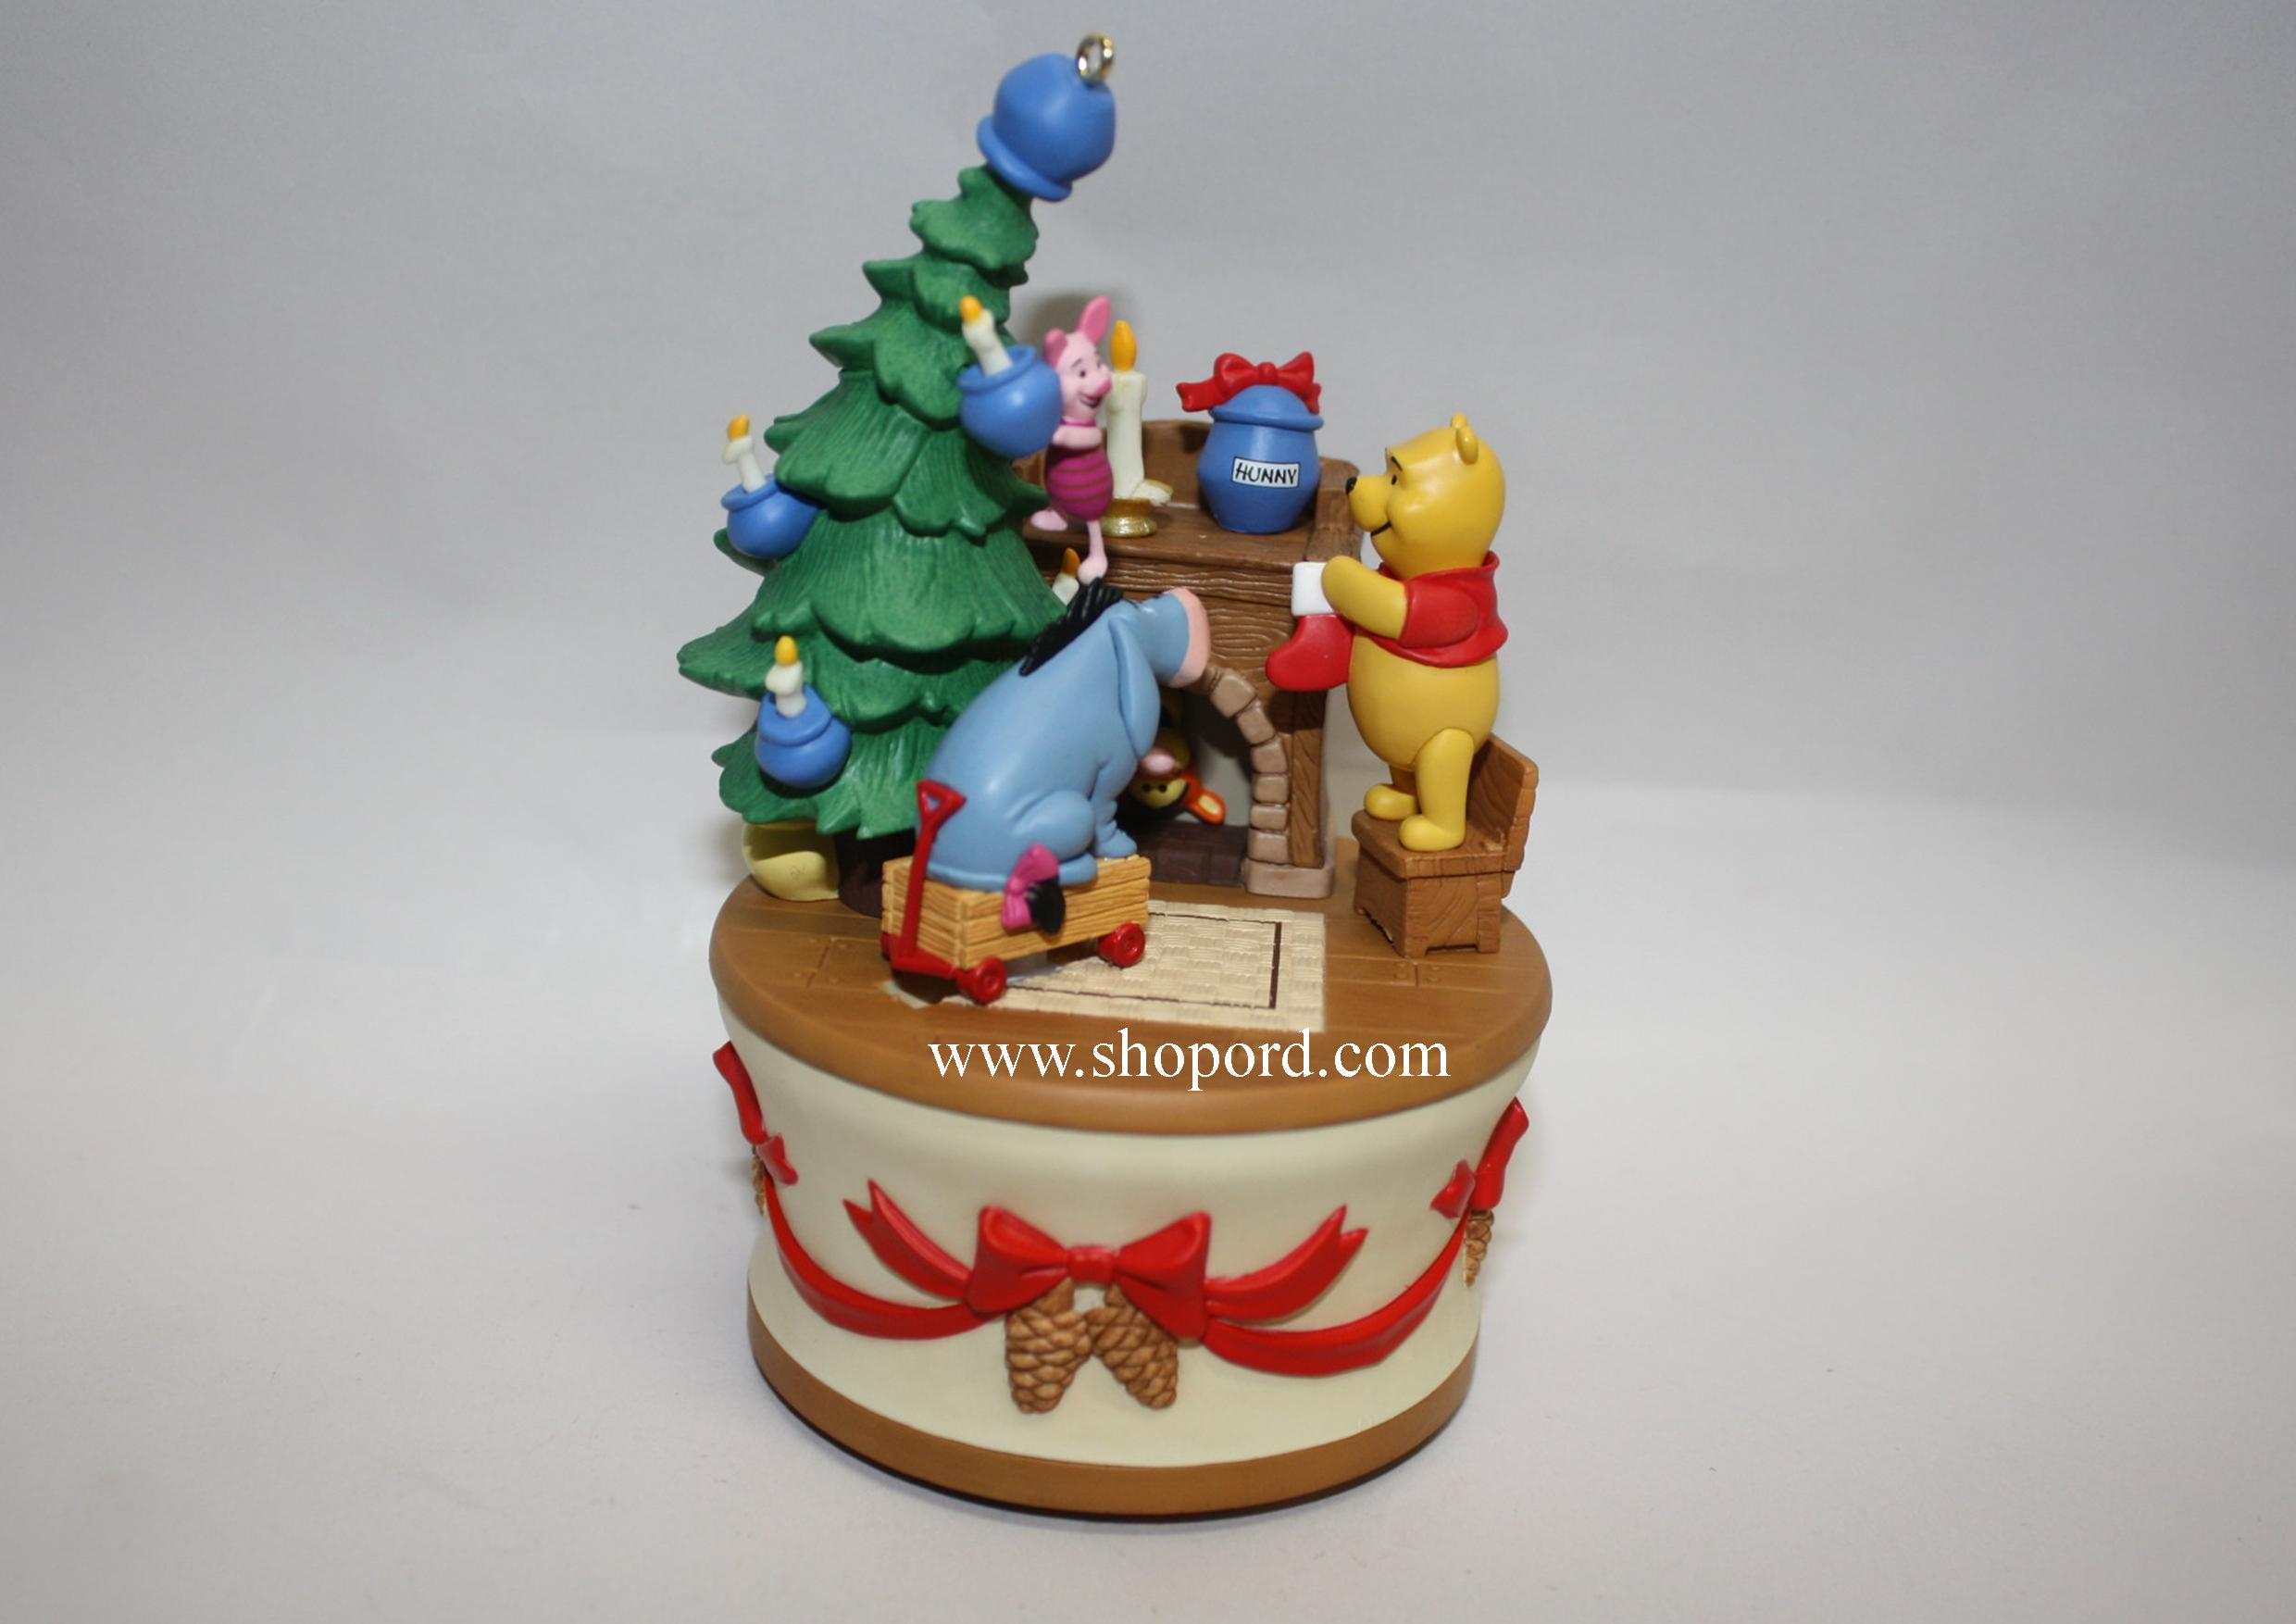 Hallmark 2005 Getting Ready For Christmas Ornament Winnie the Pooh Collection QXD4212